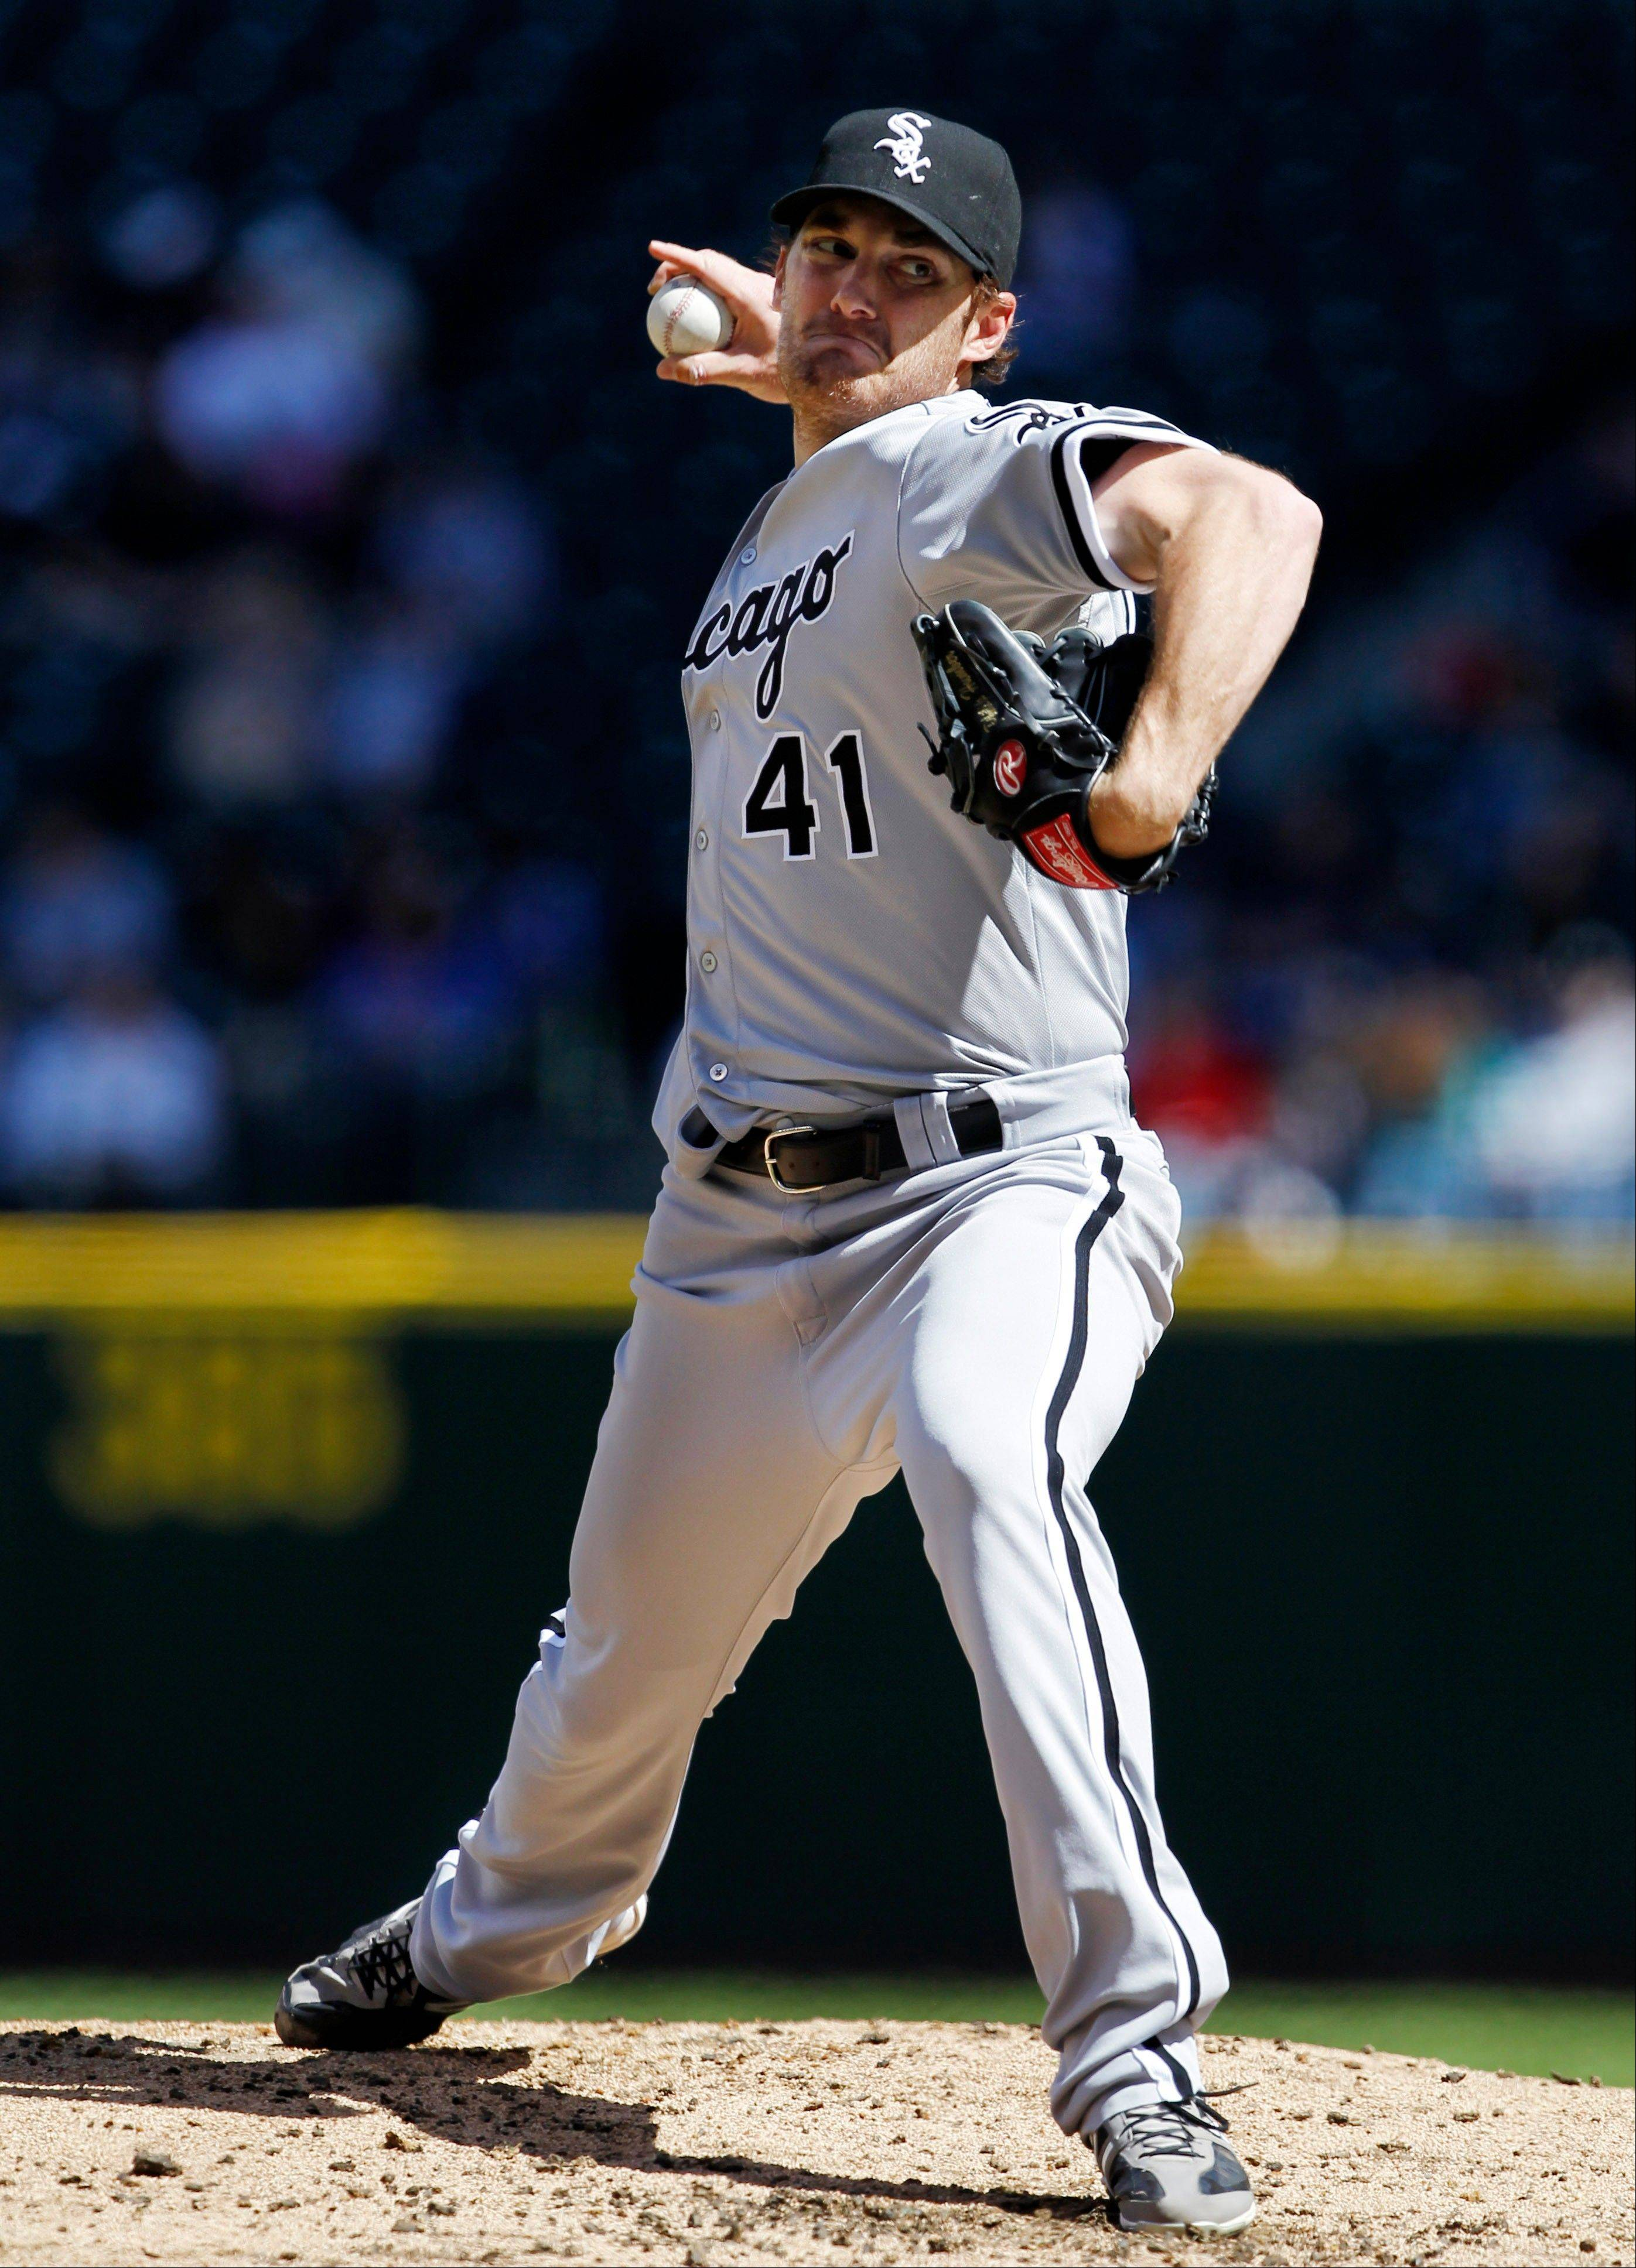 White Sox starting pitcher Phil Humber throws against the Seattle Mariners in the second inning.